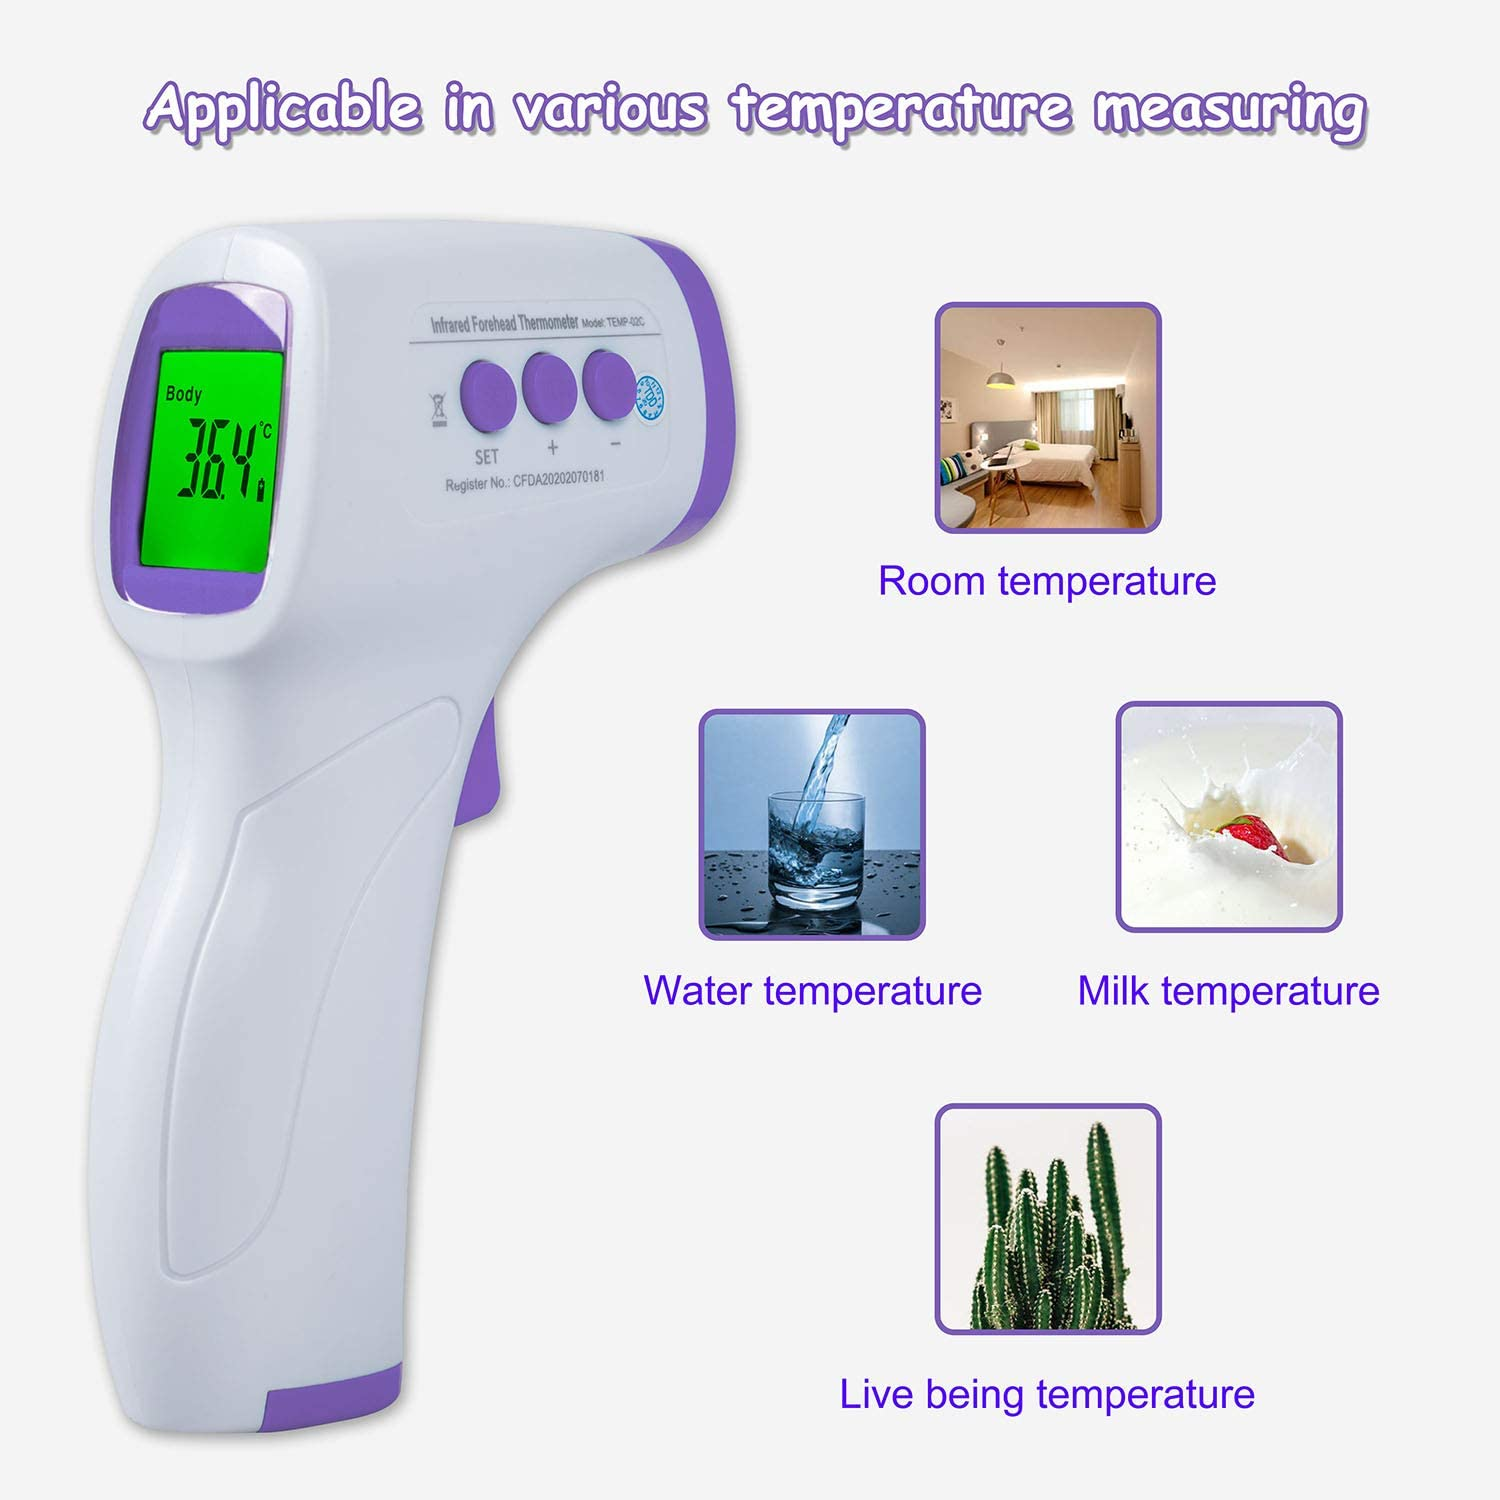 //-0.2℃//0.4℉ FESTNIGHT Non-Contact Infrared Forehead Thermometer for Baby Adult Child Surface of Objects with Memory Function Color Alarm Sound Setting Accurate